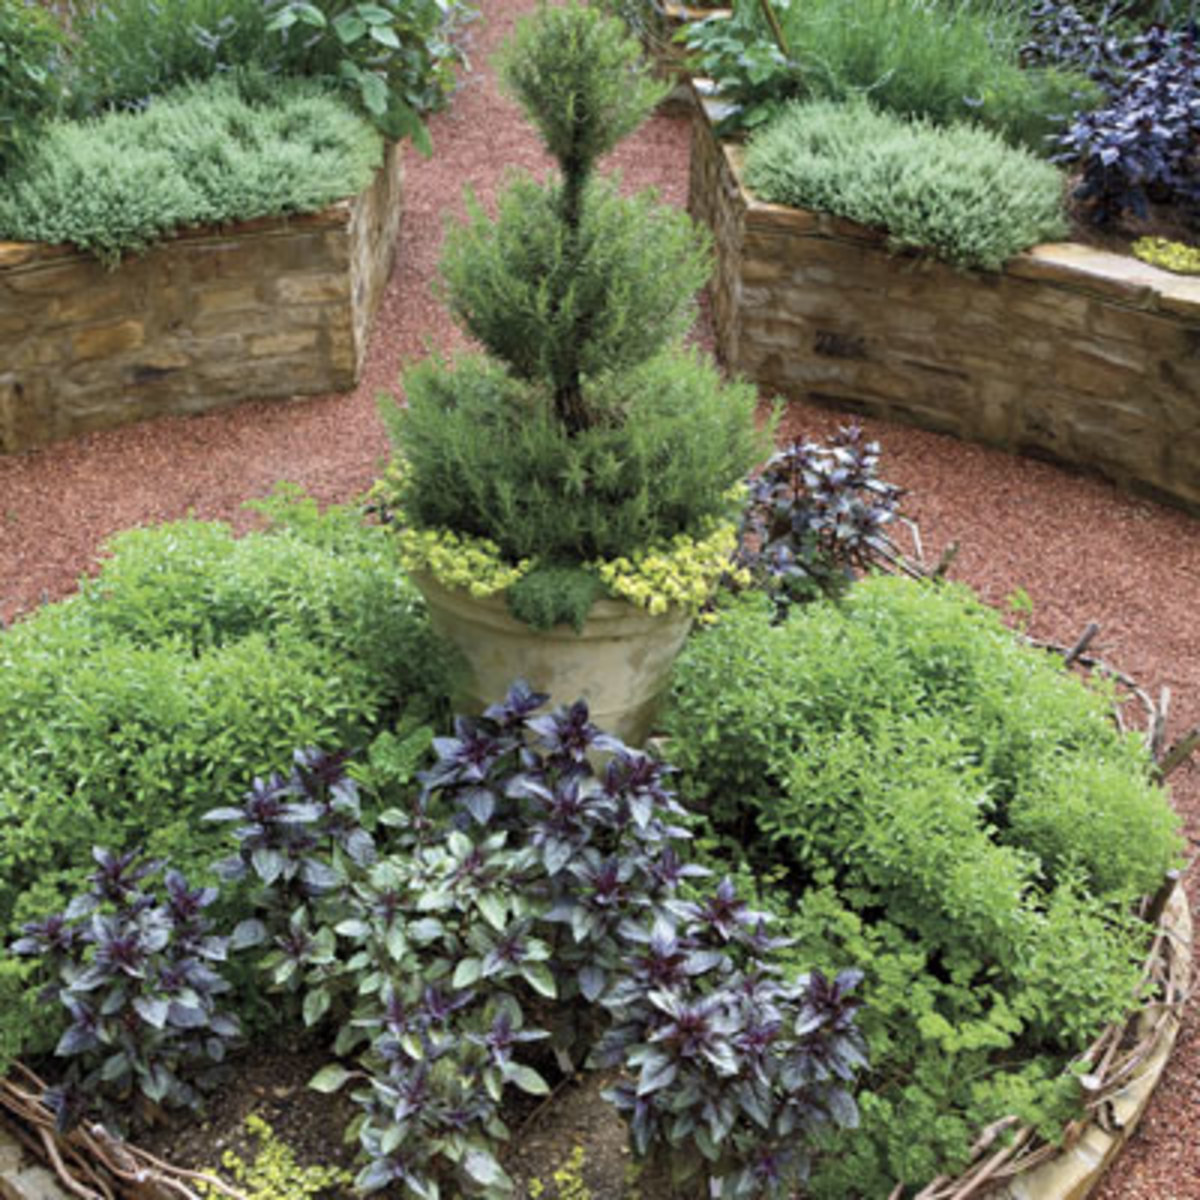 Add some height to the center of a flowerbed by placing a very vertical potted plant in the middle. Here, a potted rosemary topiary rises above the other edibles in this bed.